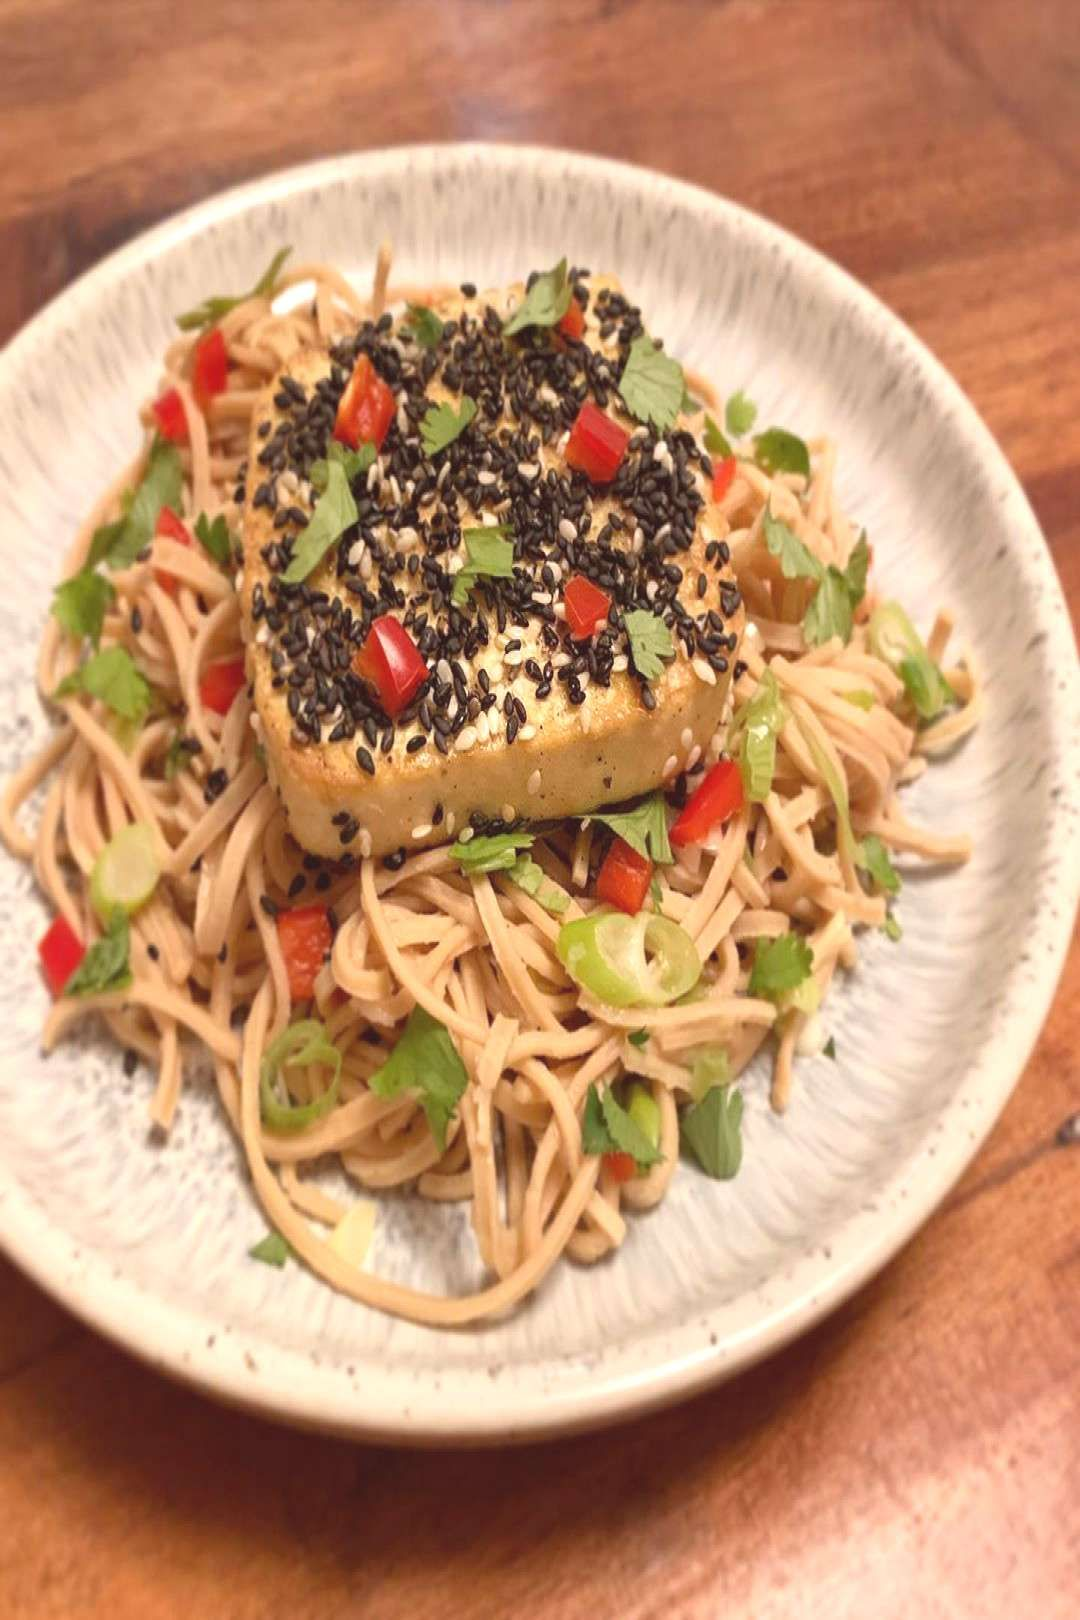 #sesamecrusted #soybean #noodle #spicy #salad #simpl #tofu #with #nice #food #a  Sesame-crusted tofu with spicy soybean noodle salad A nice simplYou can find Healthy vegan and more on our website. Sesame-crusted tofu with spicy soyb...